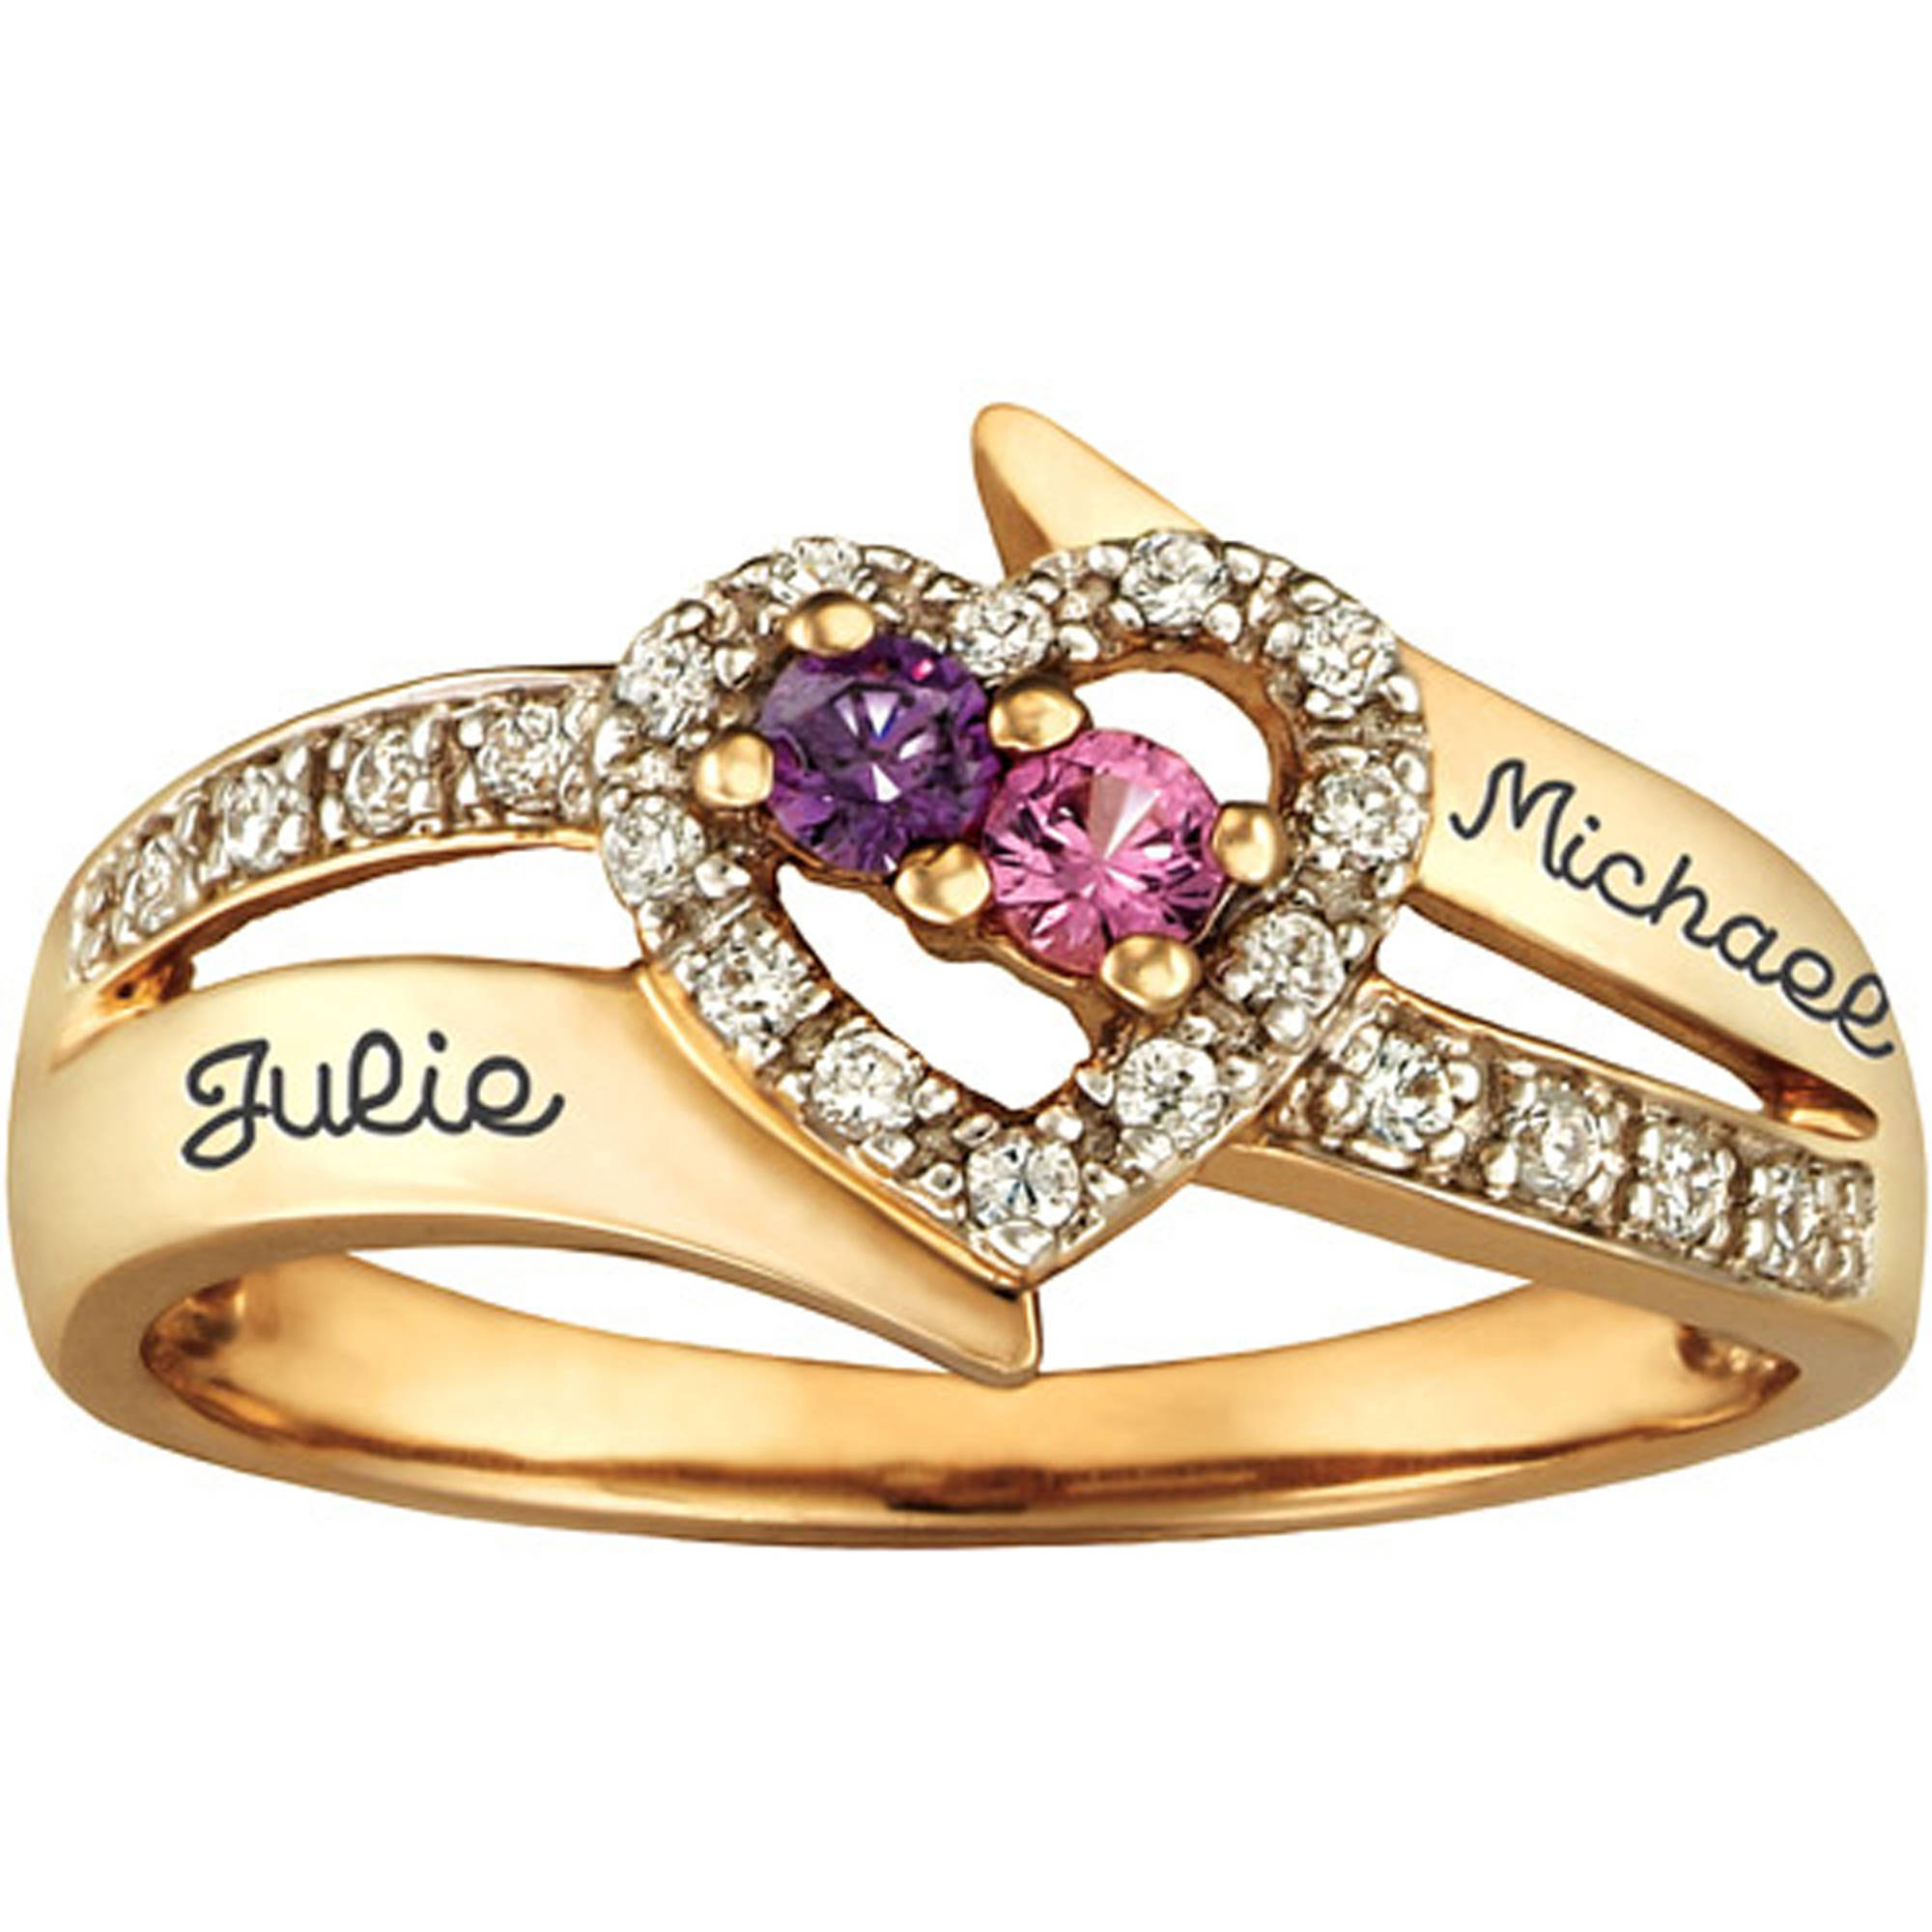 Personalized Keepsake Enchantment Promise Ring with Birthstones